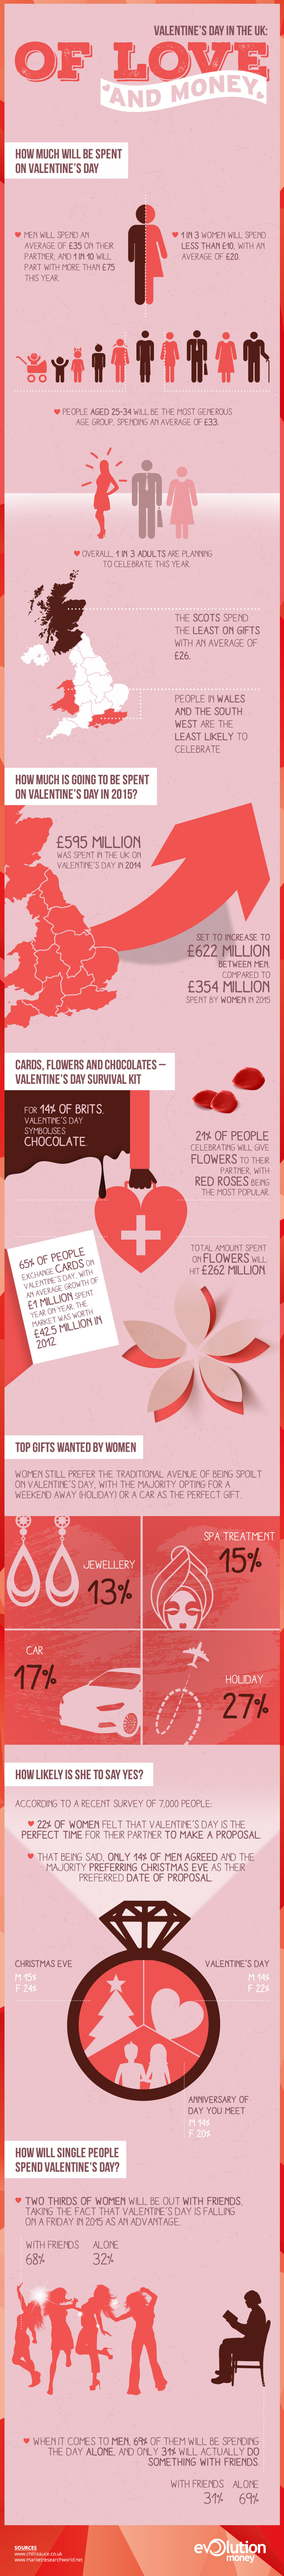 Of Love & Money: Valentine's Day in the UK